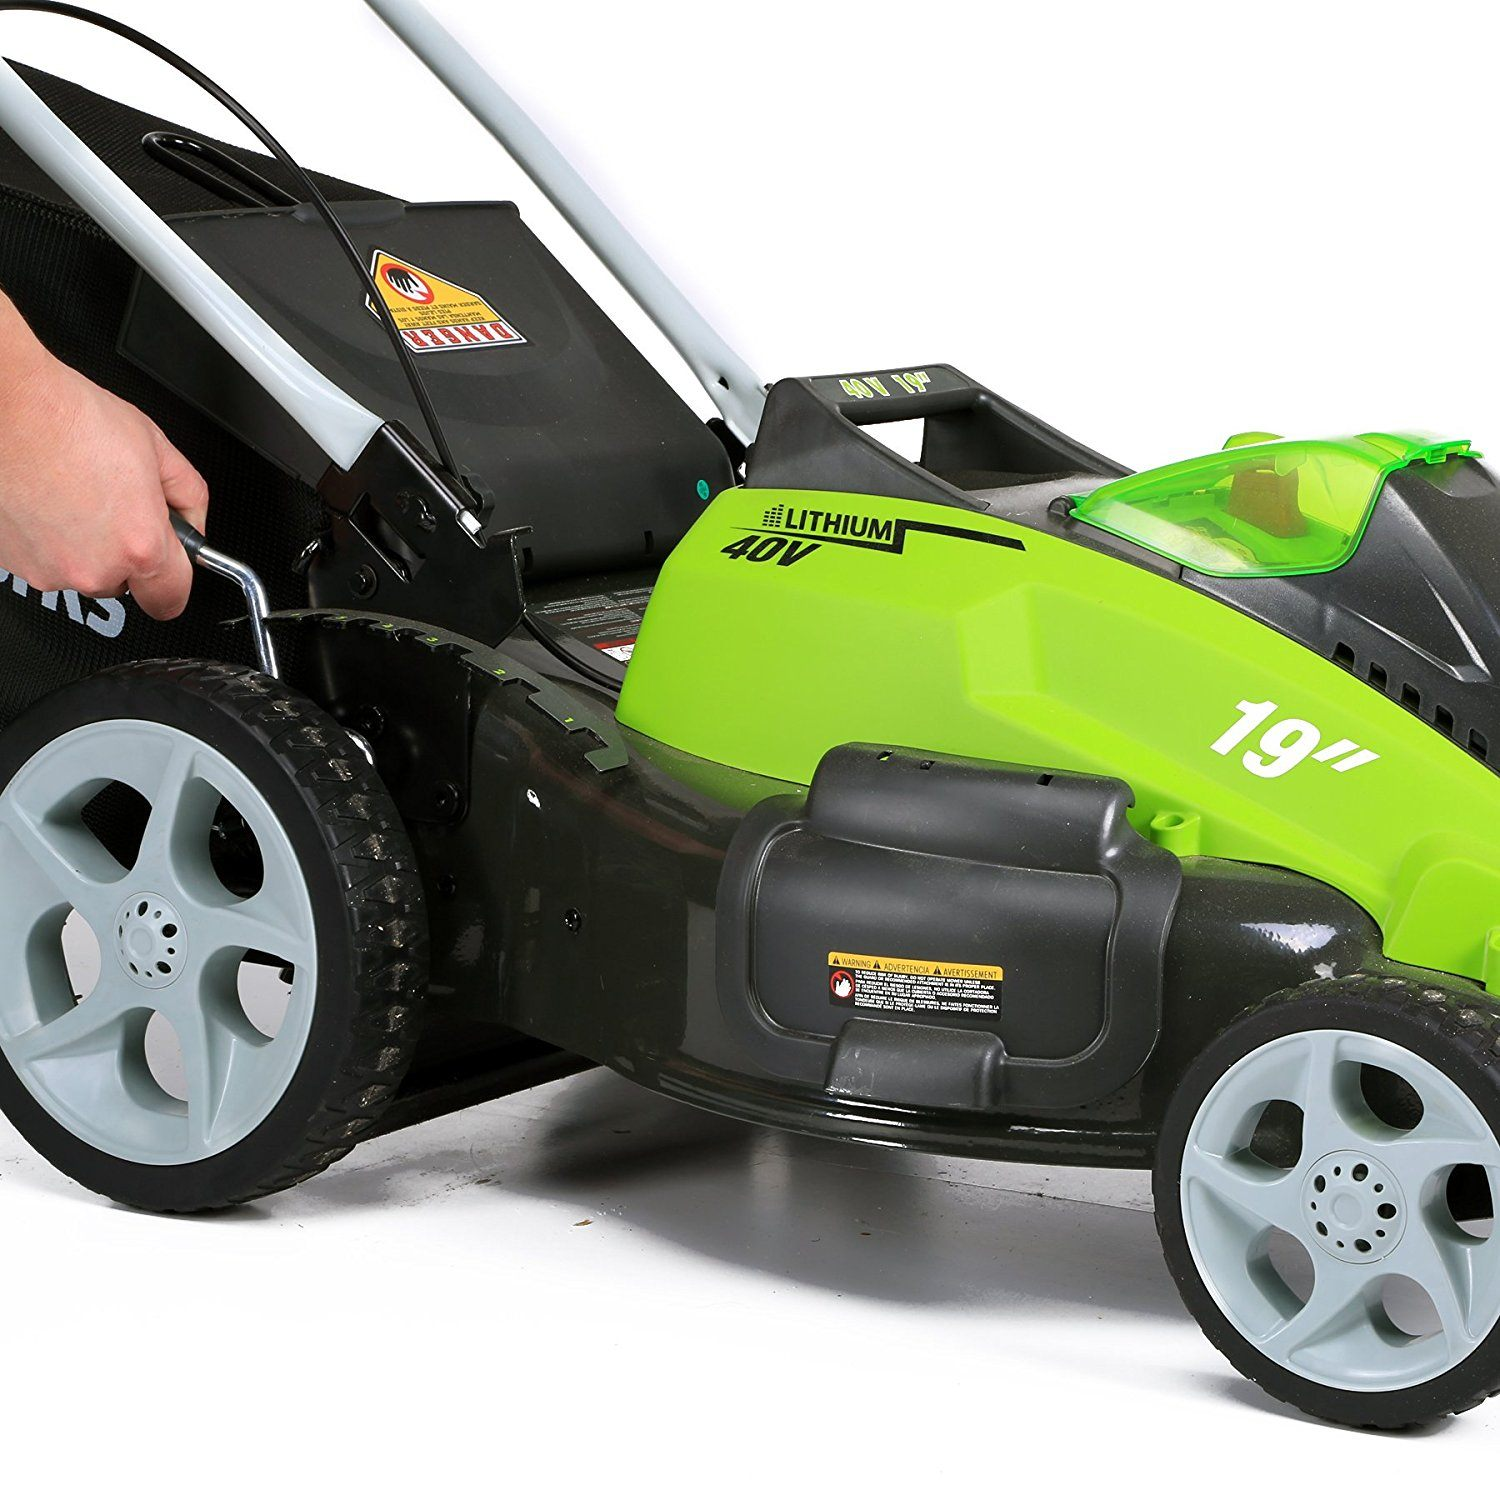 GreenWorks lawn mower G-MAX 40V height adjustment